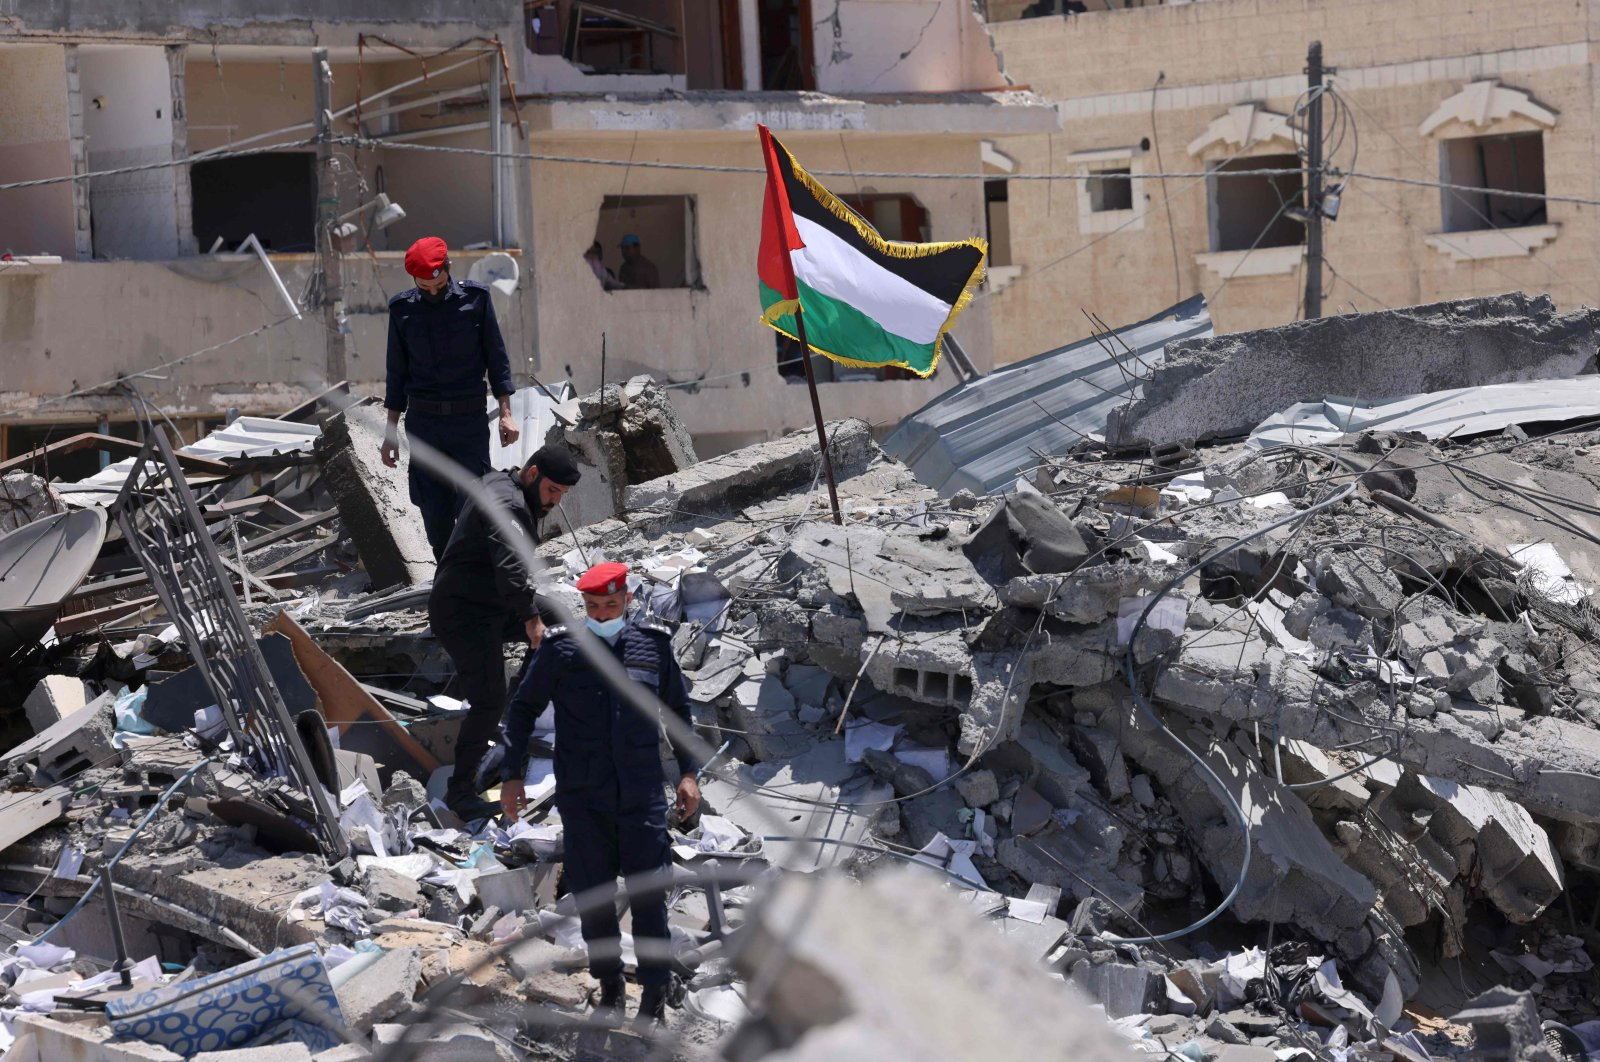 Palestinian police officers walk amid the rubble following a cease-fire in Gaza City, Gaza Strip, Palestine, on May 22, 2021. (AFP Photo)